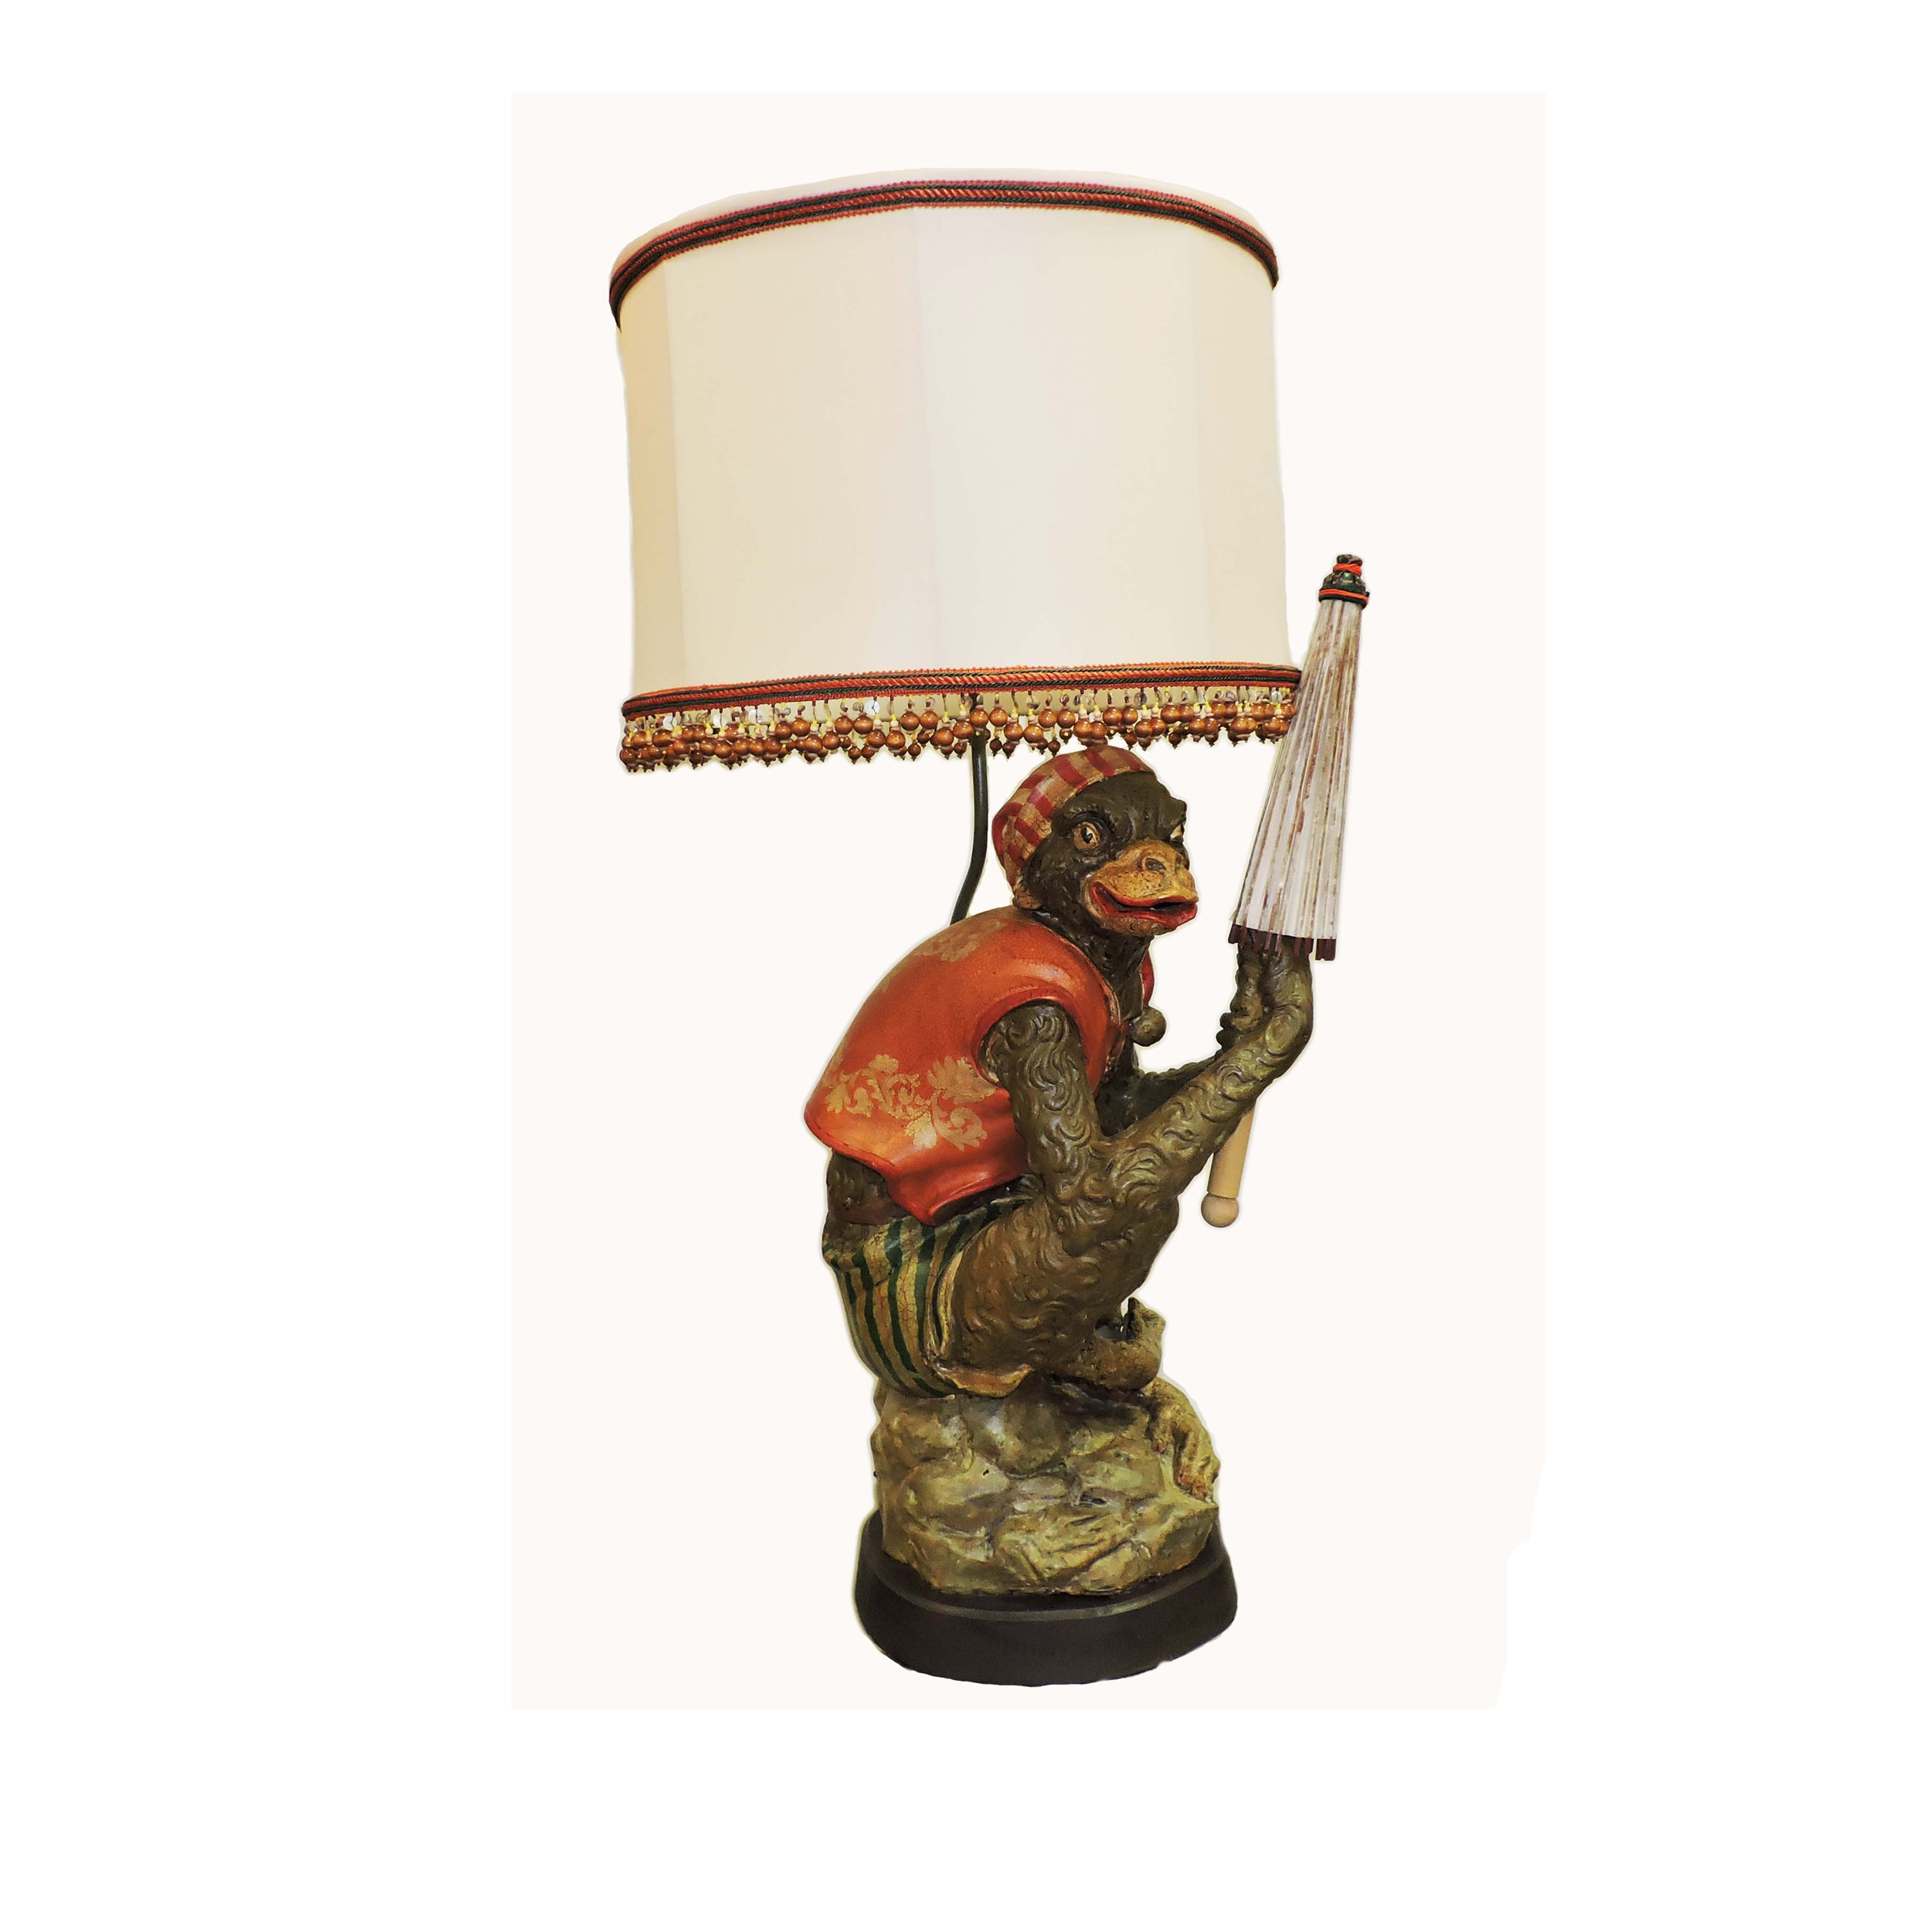 French monkey lamp - Antique Monkey Lamp